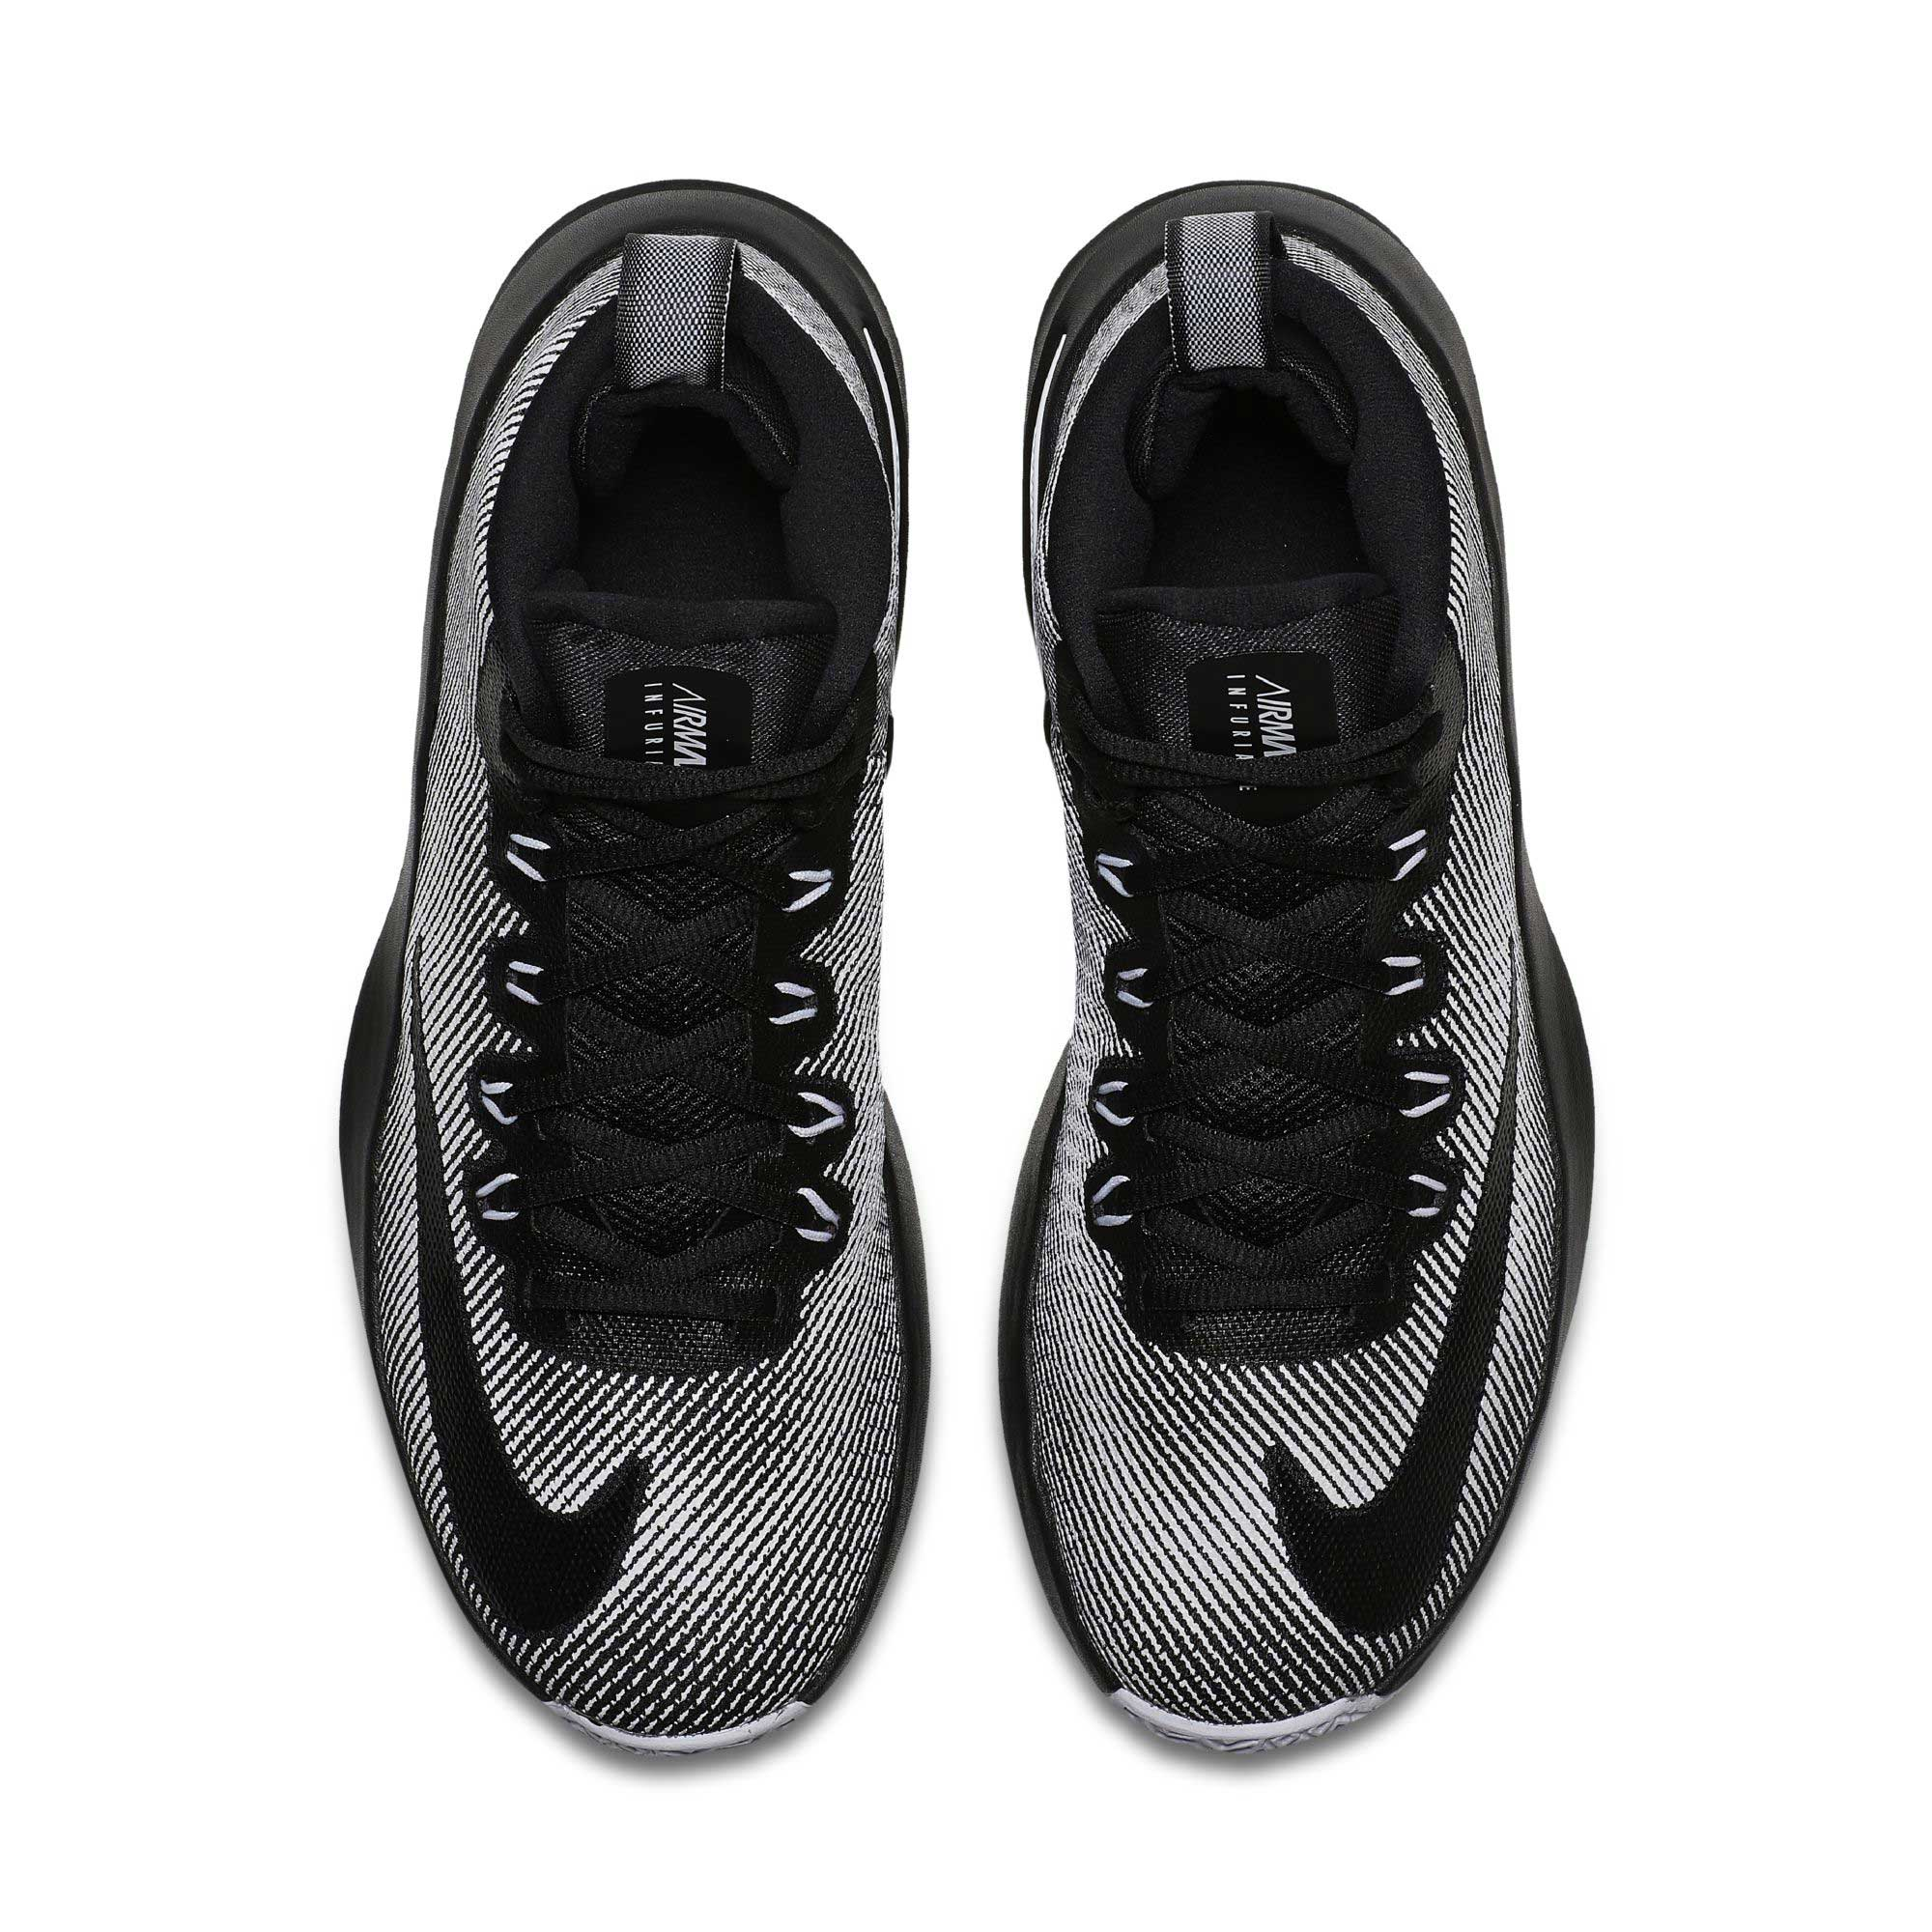 Original NIKE Authentic NIKE AIR MAX INFURIATE MID EP Mens Sport Shoes Non  slip Breathable Basketball Sneakers Sports Outdoor-in Basketball Shoes from  ... d82136bb2